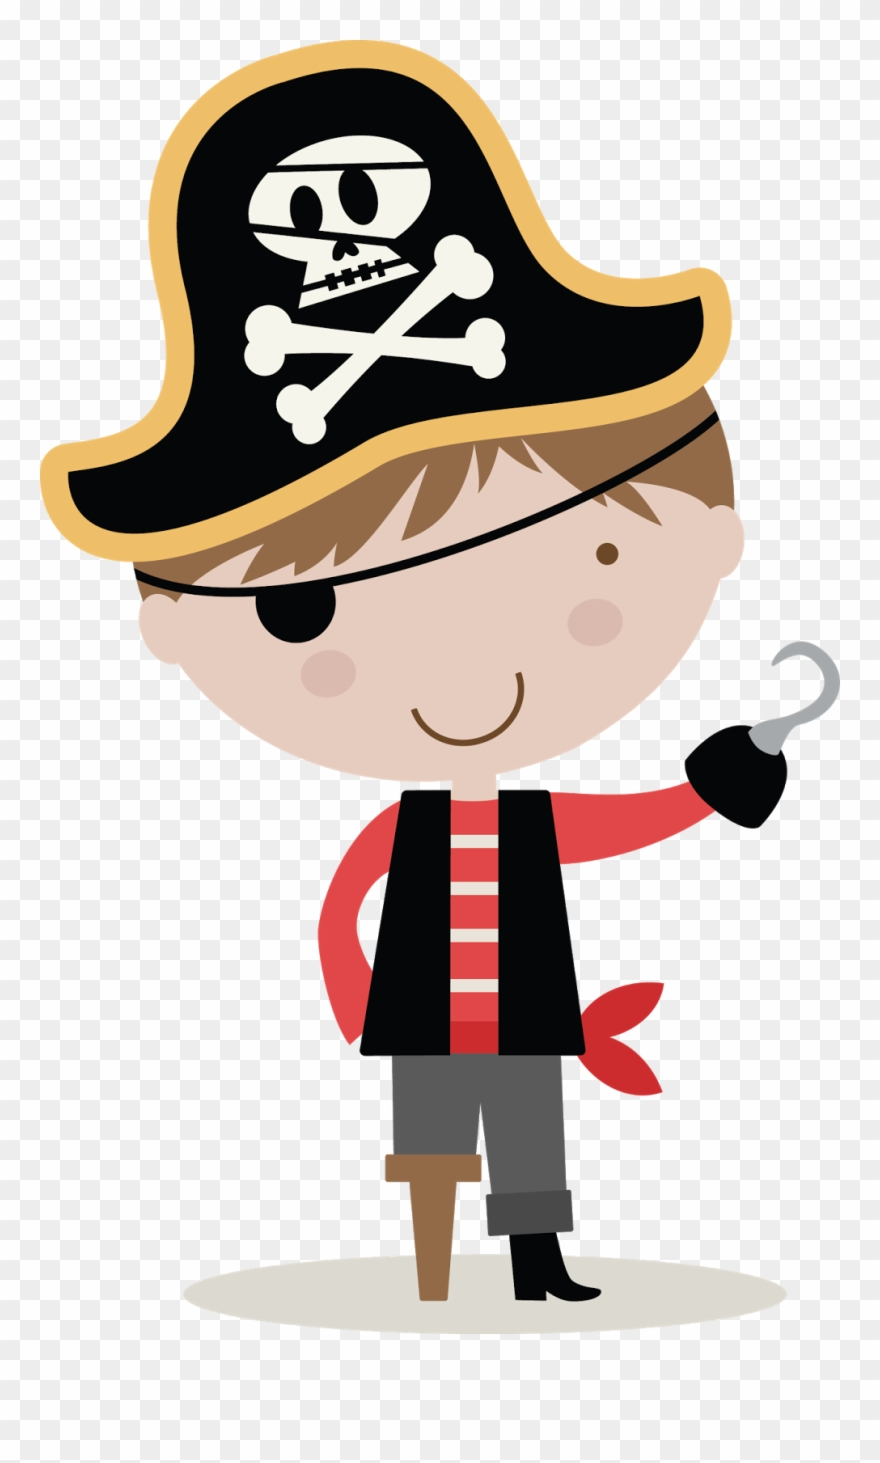 Pirate clipart for kids free jpg freeuse library Security Kid Pirate Pictures Pirates Kids Clip - Pirate Clipart Png ... jpg freeuse library